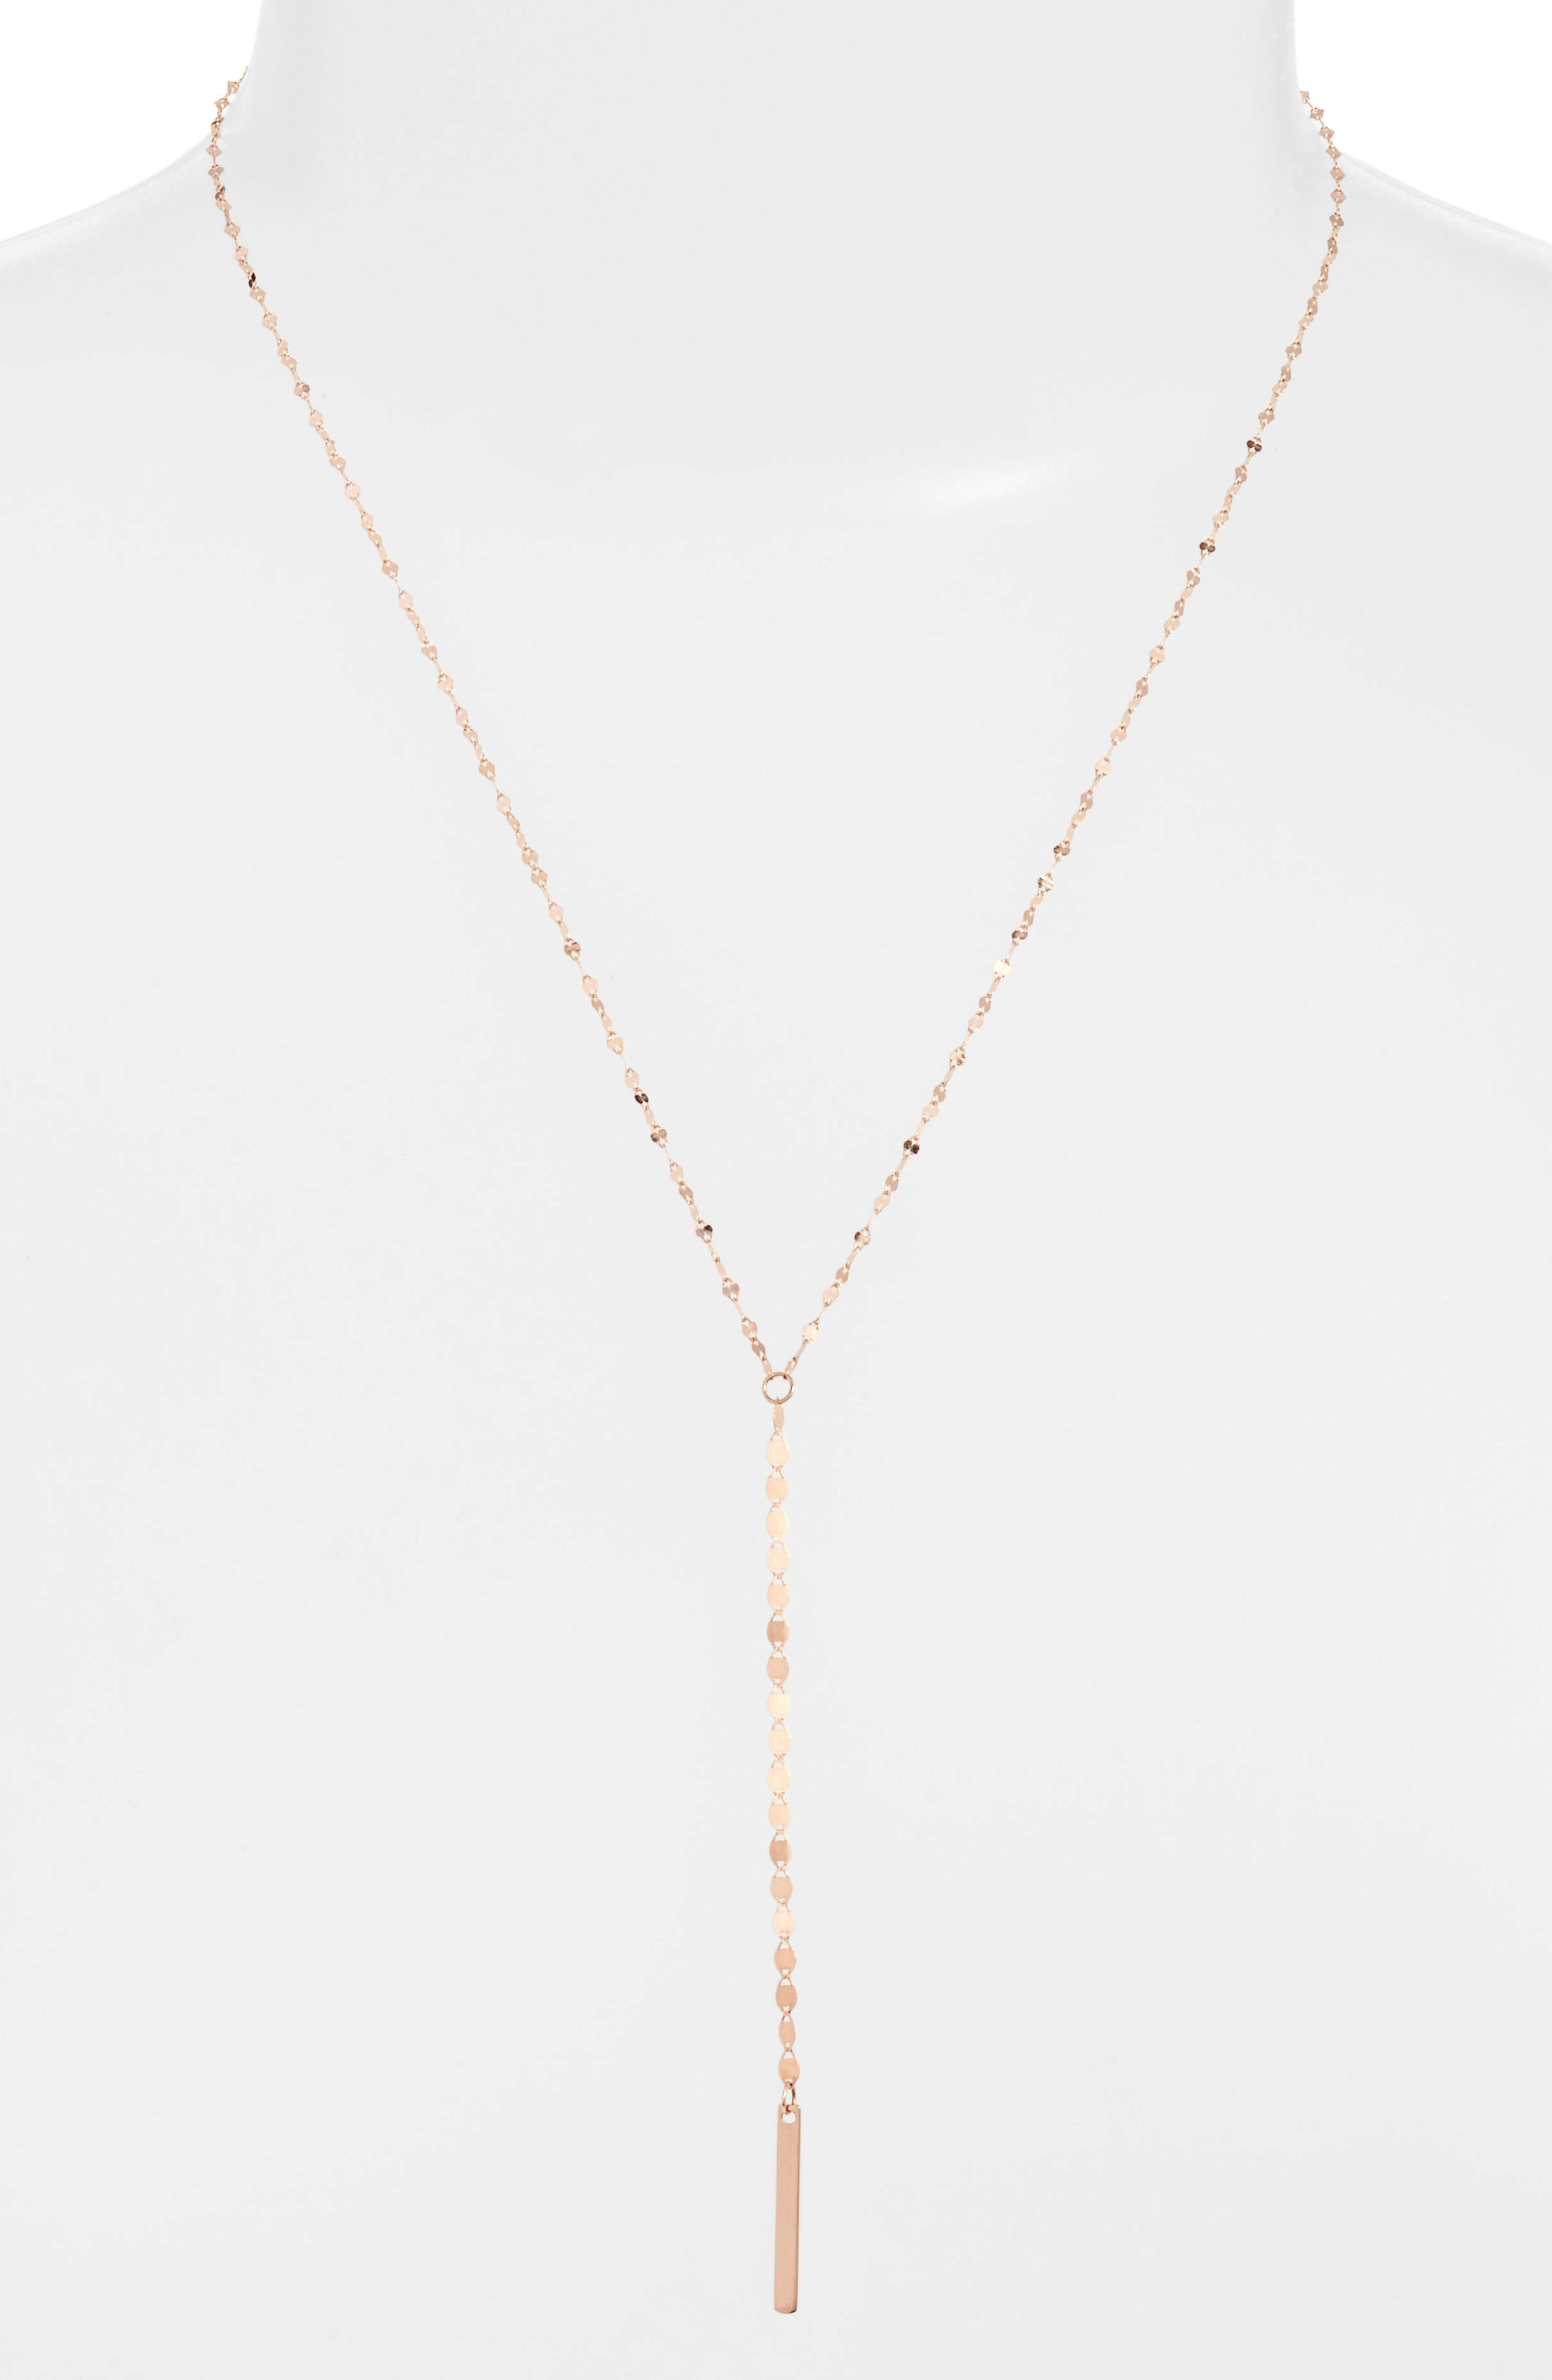 Alternate Image 1 Selected - Lana Jewelry Nude Remix Bar Y-Necklace